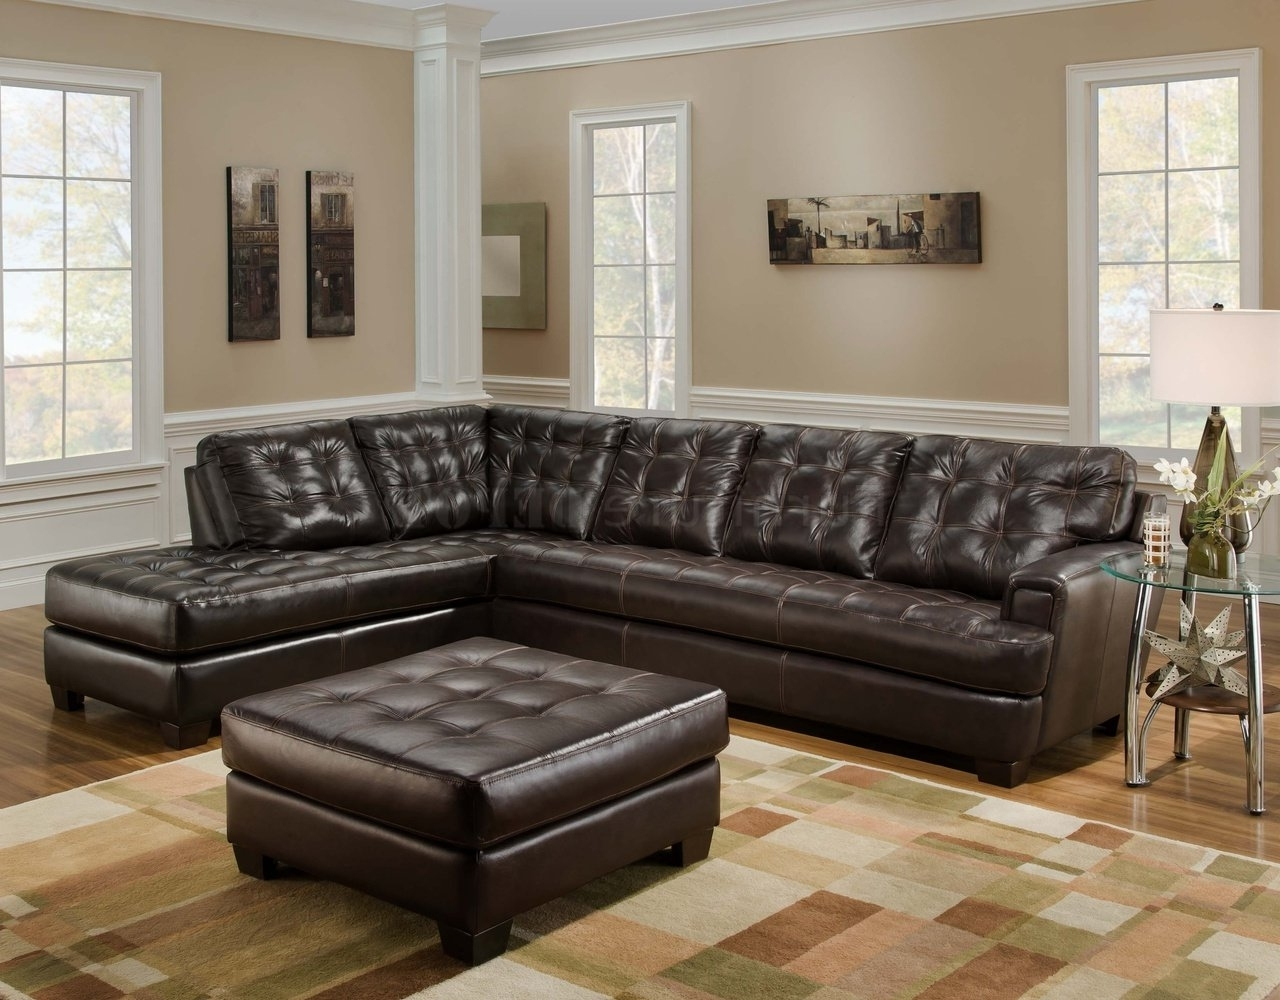 Dark Brown Leather Tufted Sectional Chaise Lounge Sofa With In Current Leather Sectionals With Chaise And Ottoman (View 5 of 15)